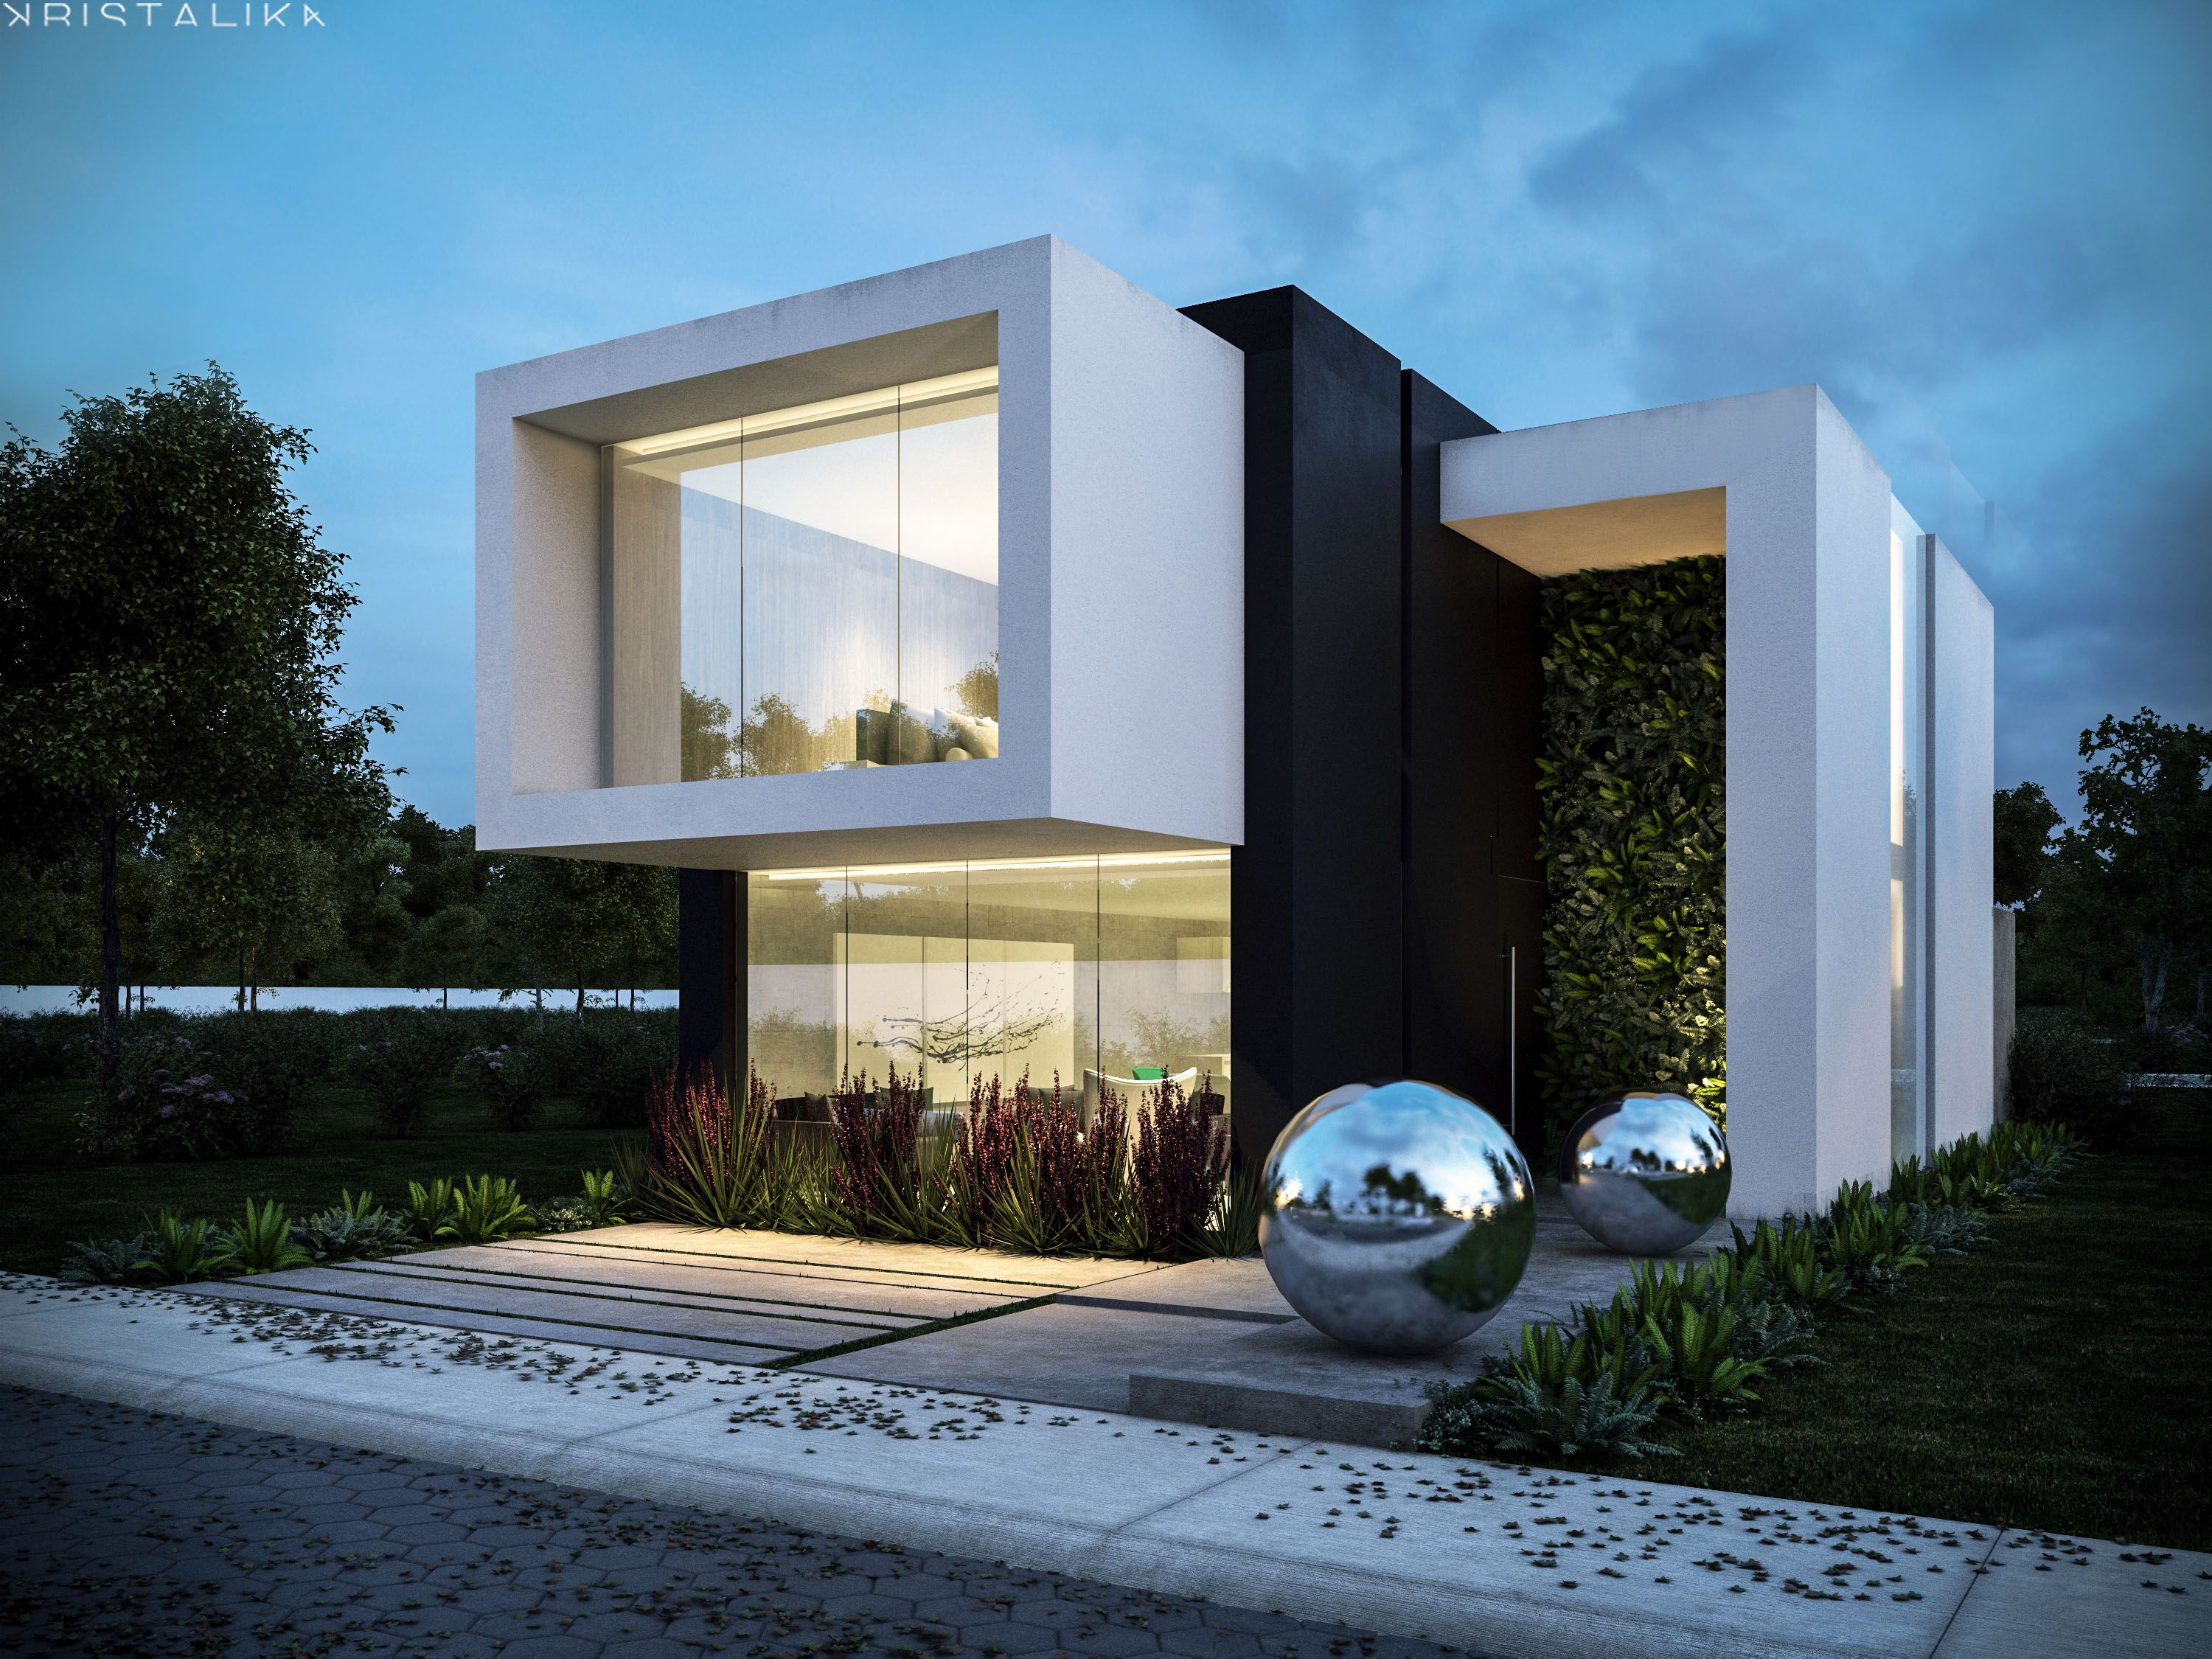 RSI 16 HOUSE Modern house facades, House architecture